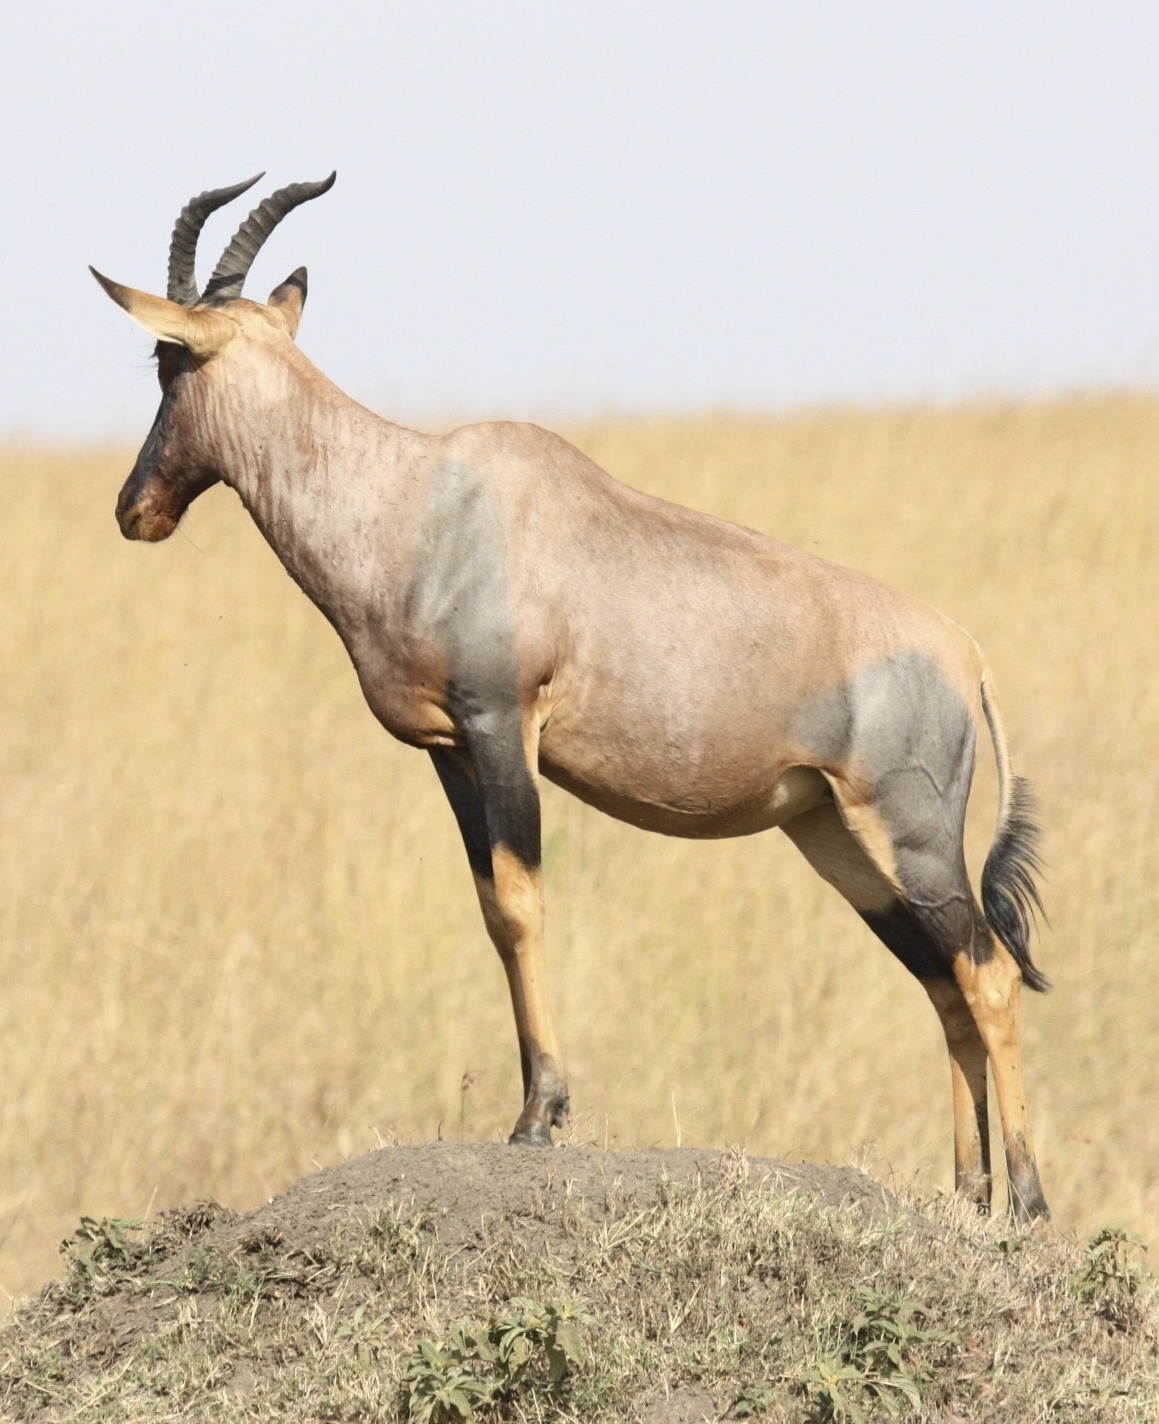 A photo of an antelope.